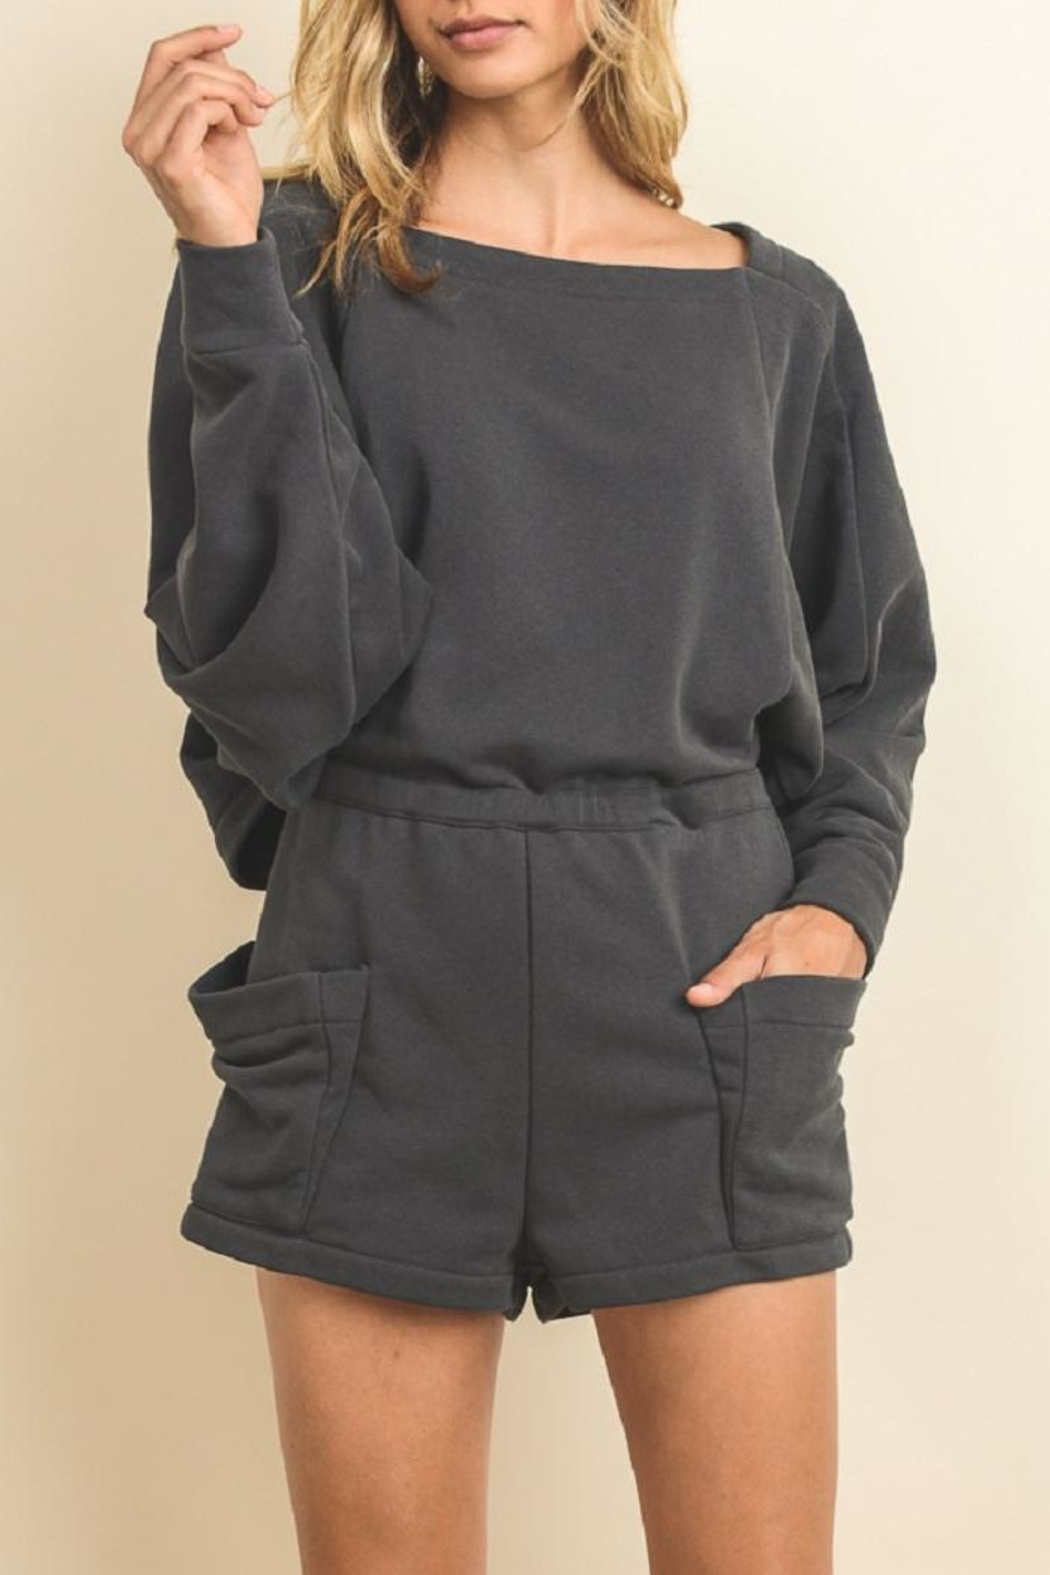 dress forum Comfy Grey Romper - Main Image